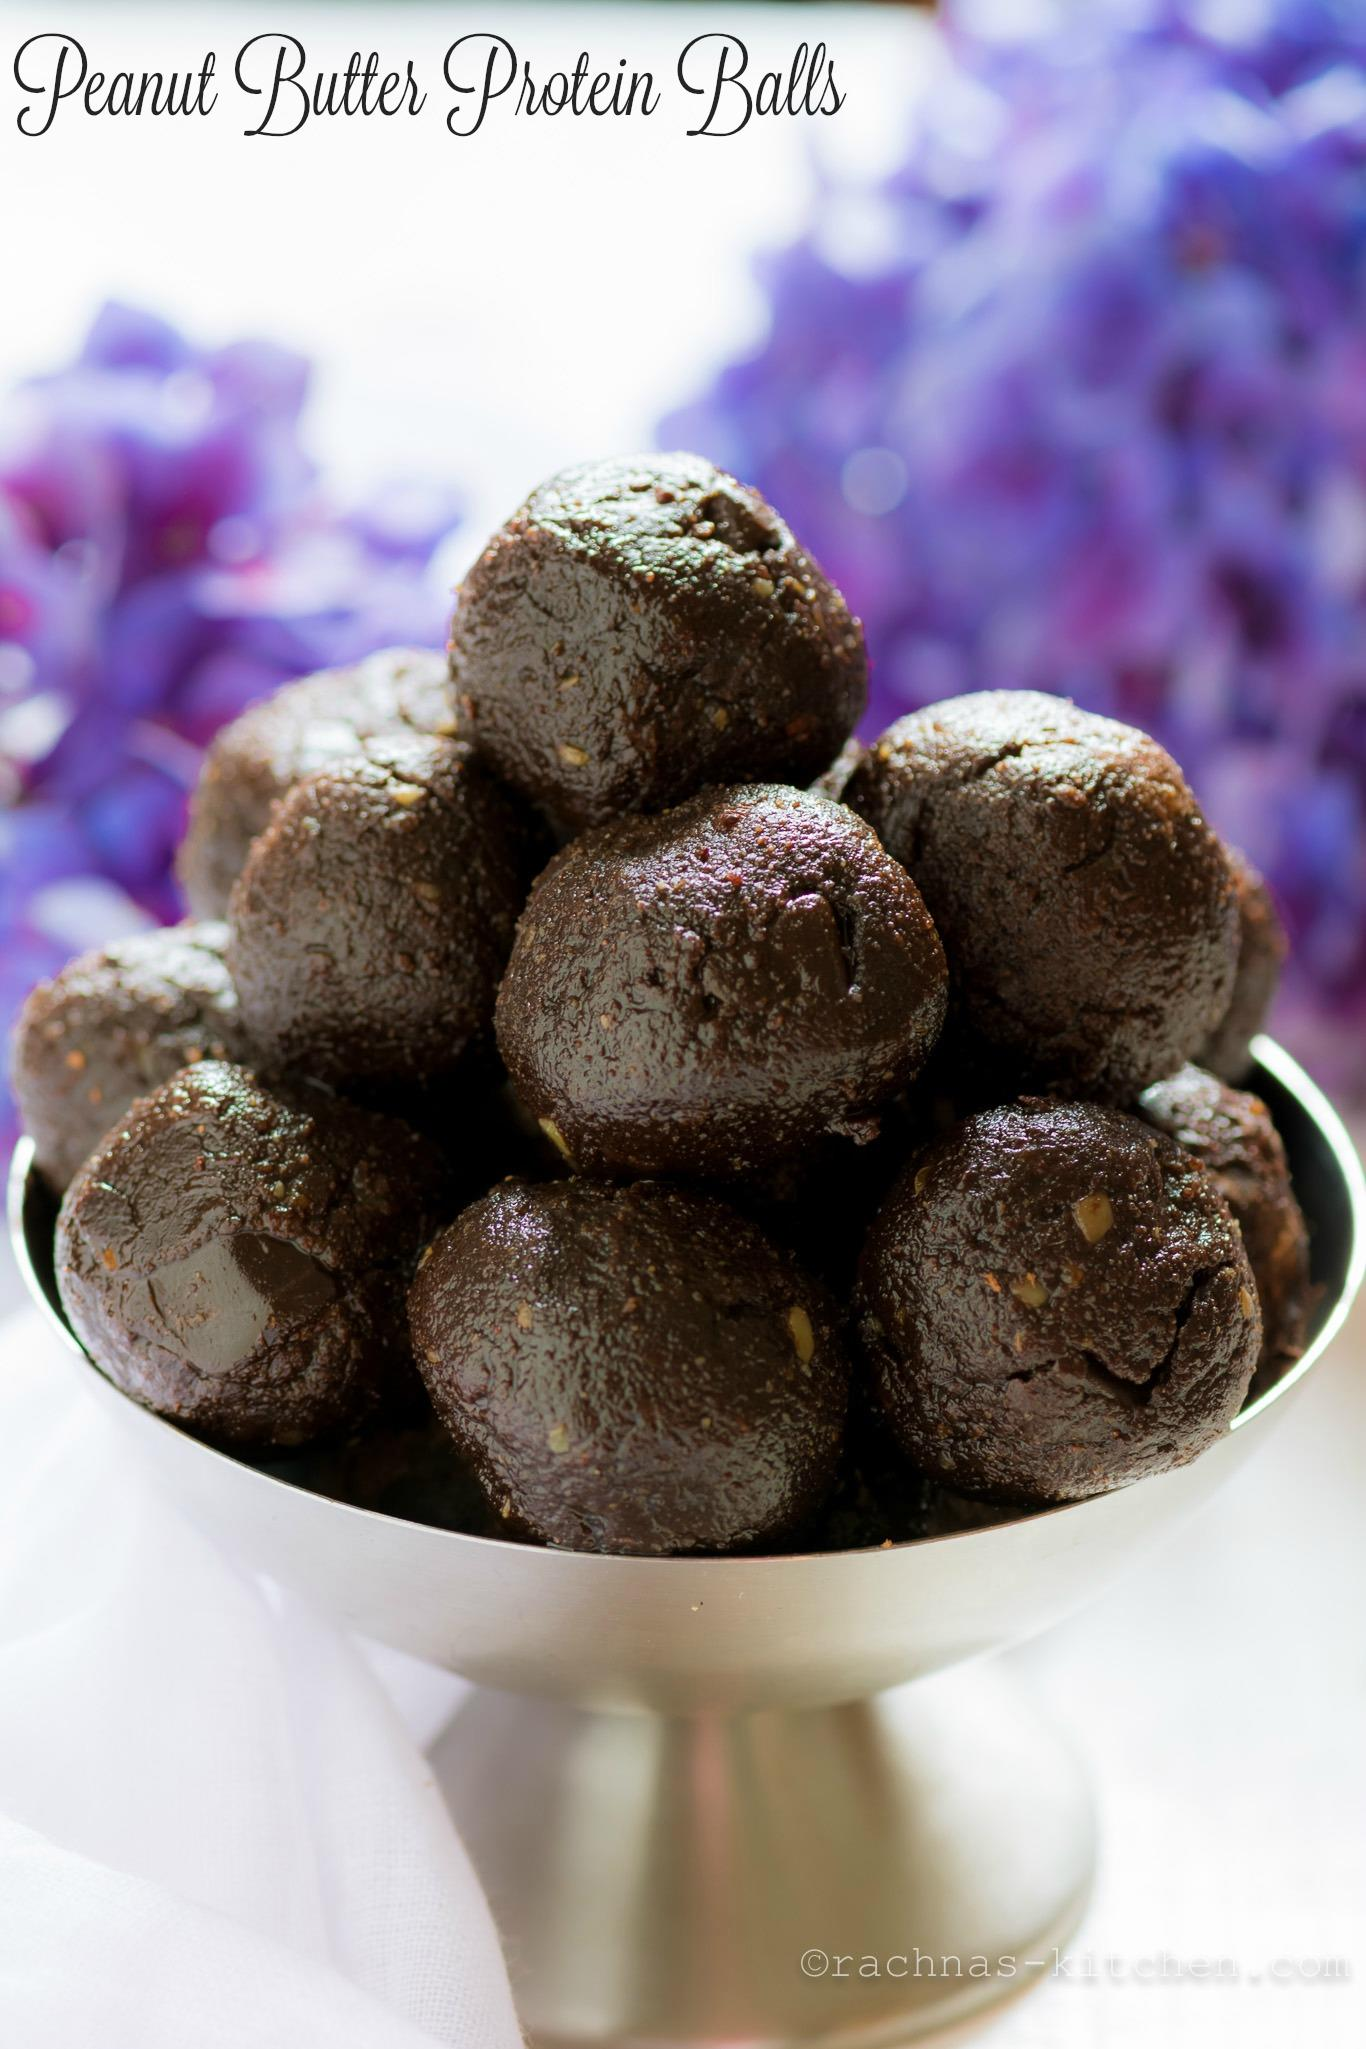 Peanut Butter and Chocolate Protein Balls